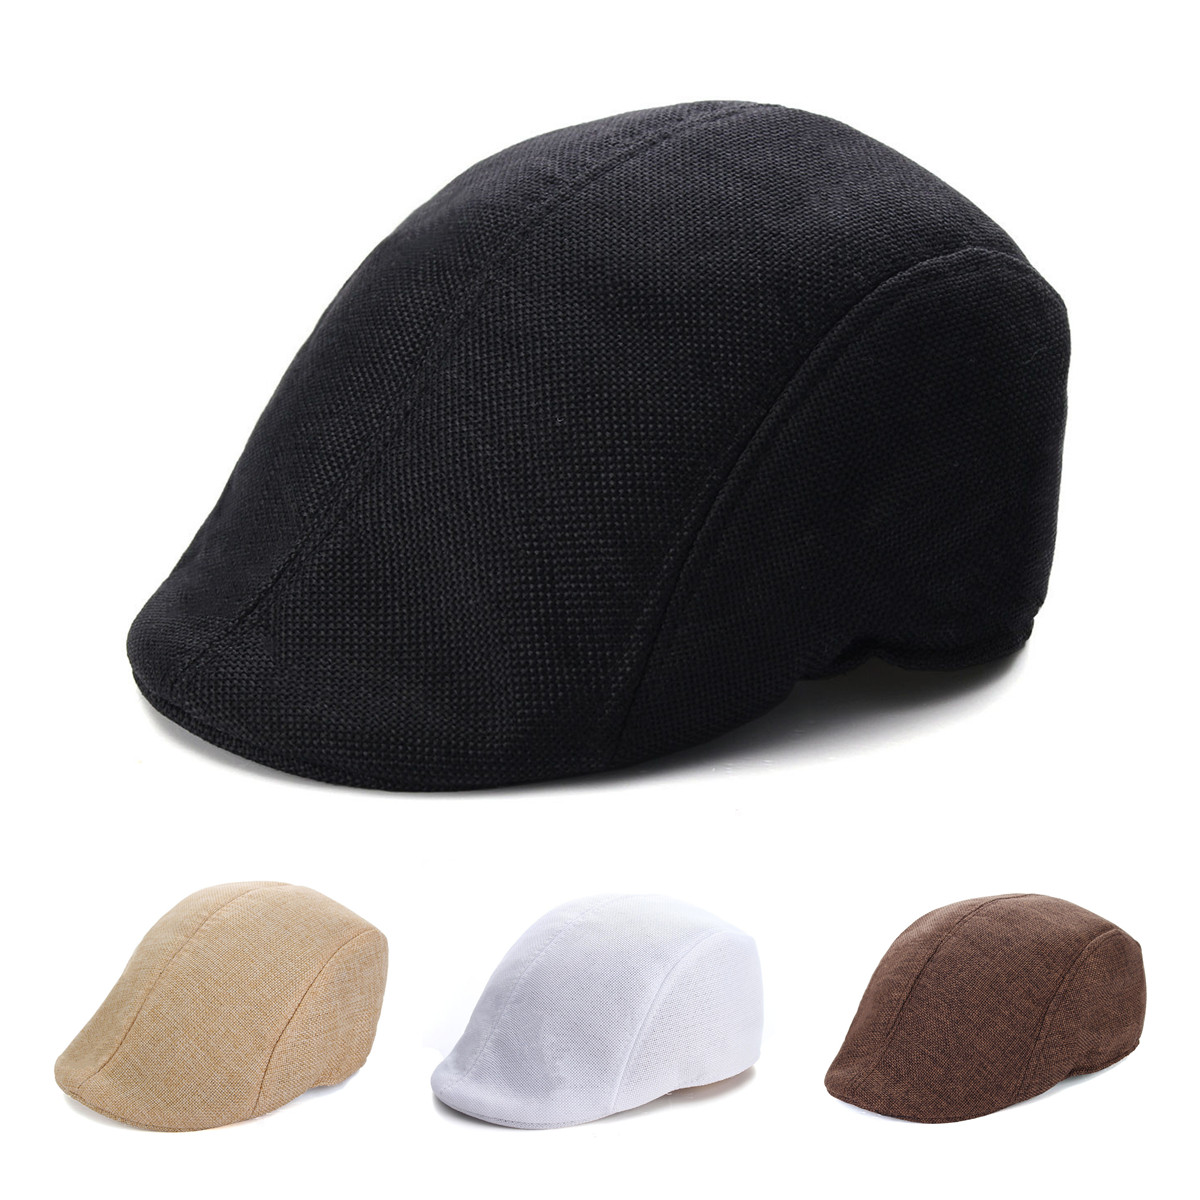 Mens Herringbone Flat Hat Peaked Racing Country Golf Newsboy Beret Cap skullies beanies mink mink wool hat hat lady warm winter knight peaked cap cap peaked cap